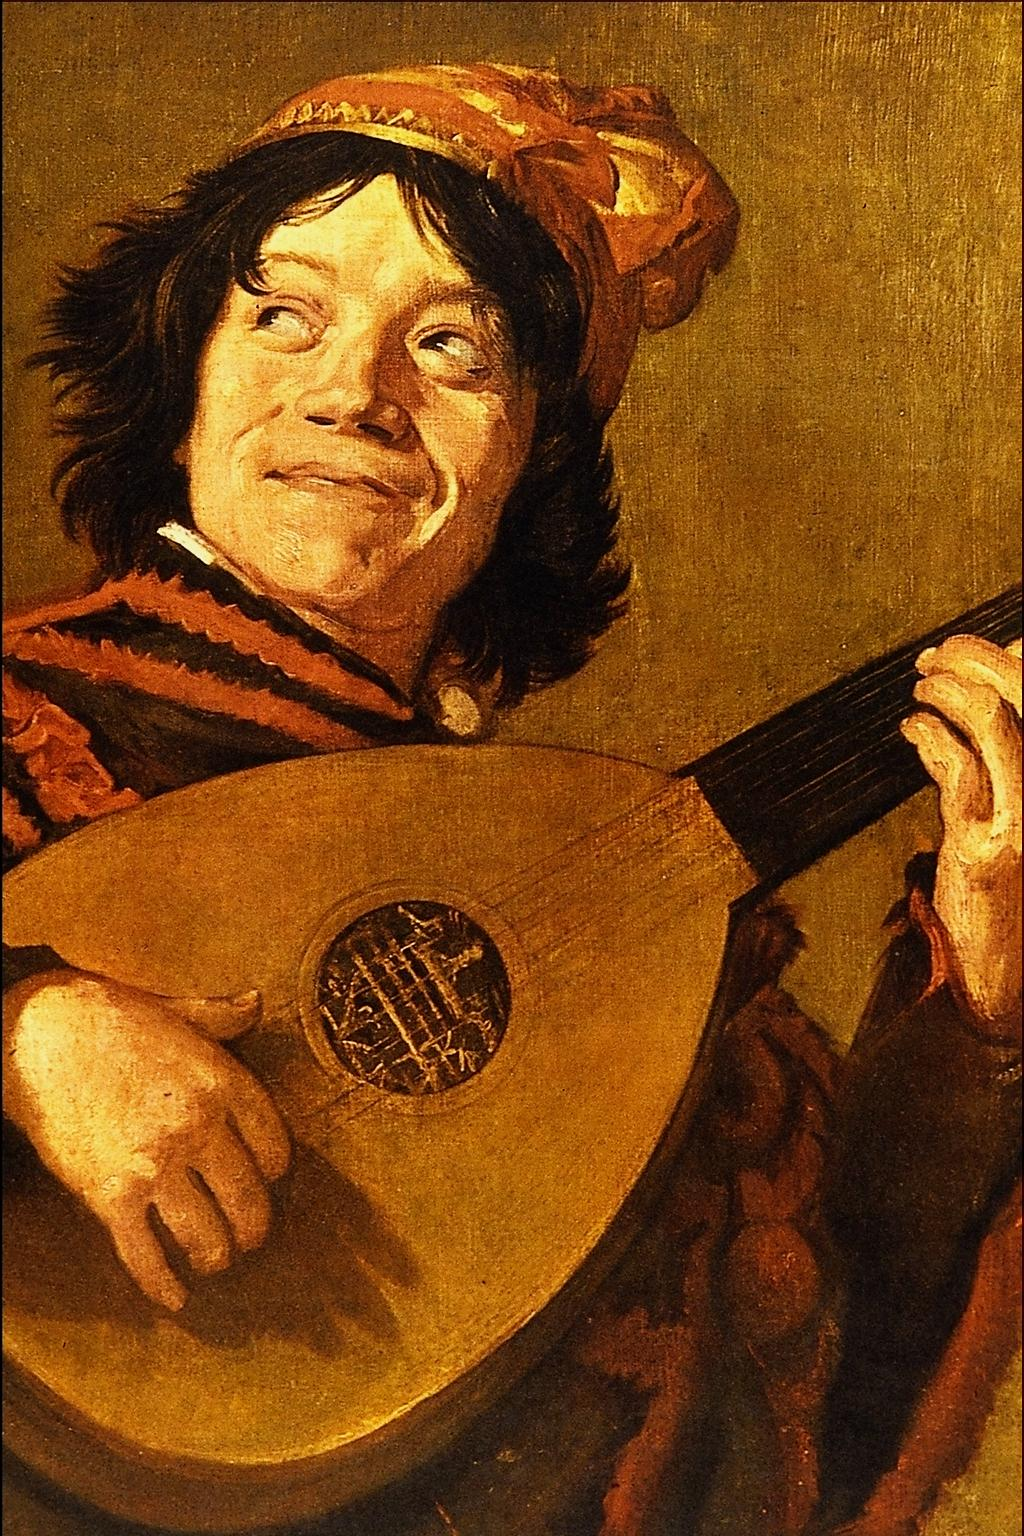 Vacation time inspired by art: Judith Leyster, Young man playing the lute (copy of Lute Player by Frans Hals), Rijksmuseum, Amsterdam, Netherlands.